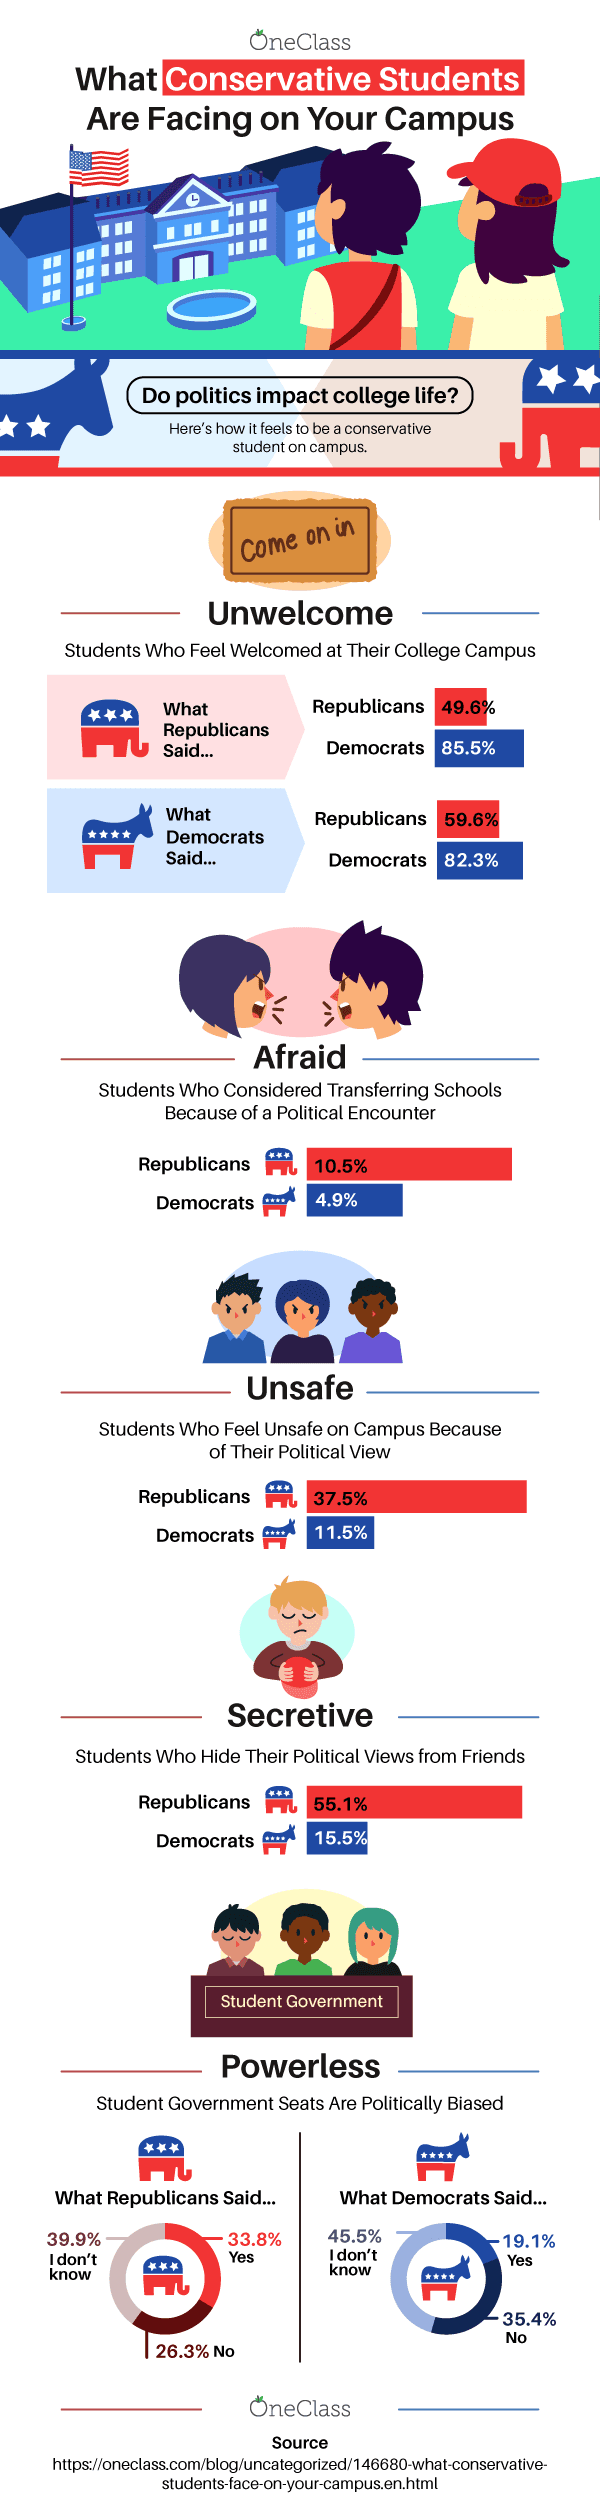 What Conservative Students are Facing on Your Campus